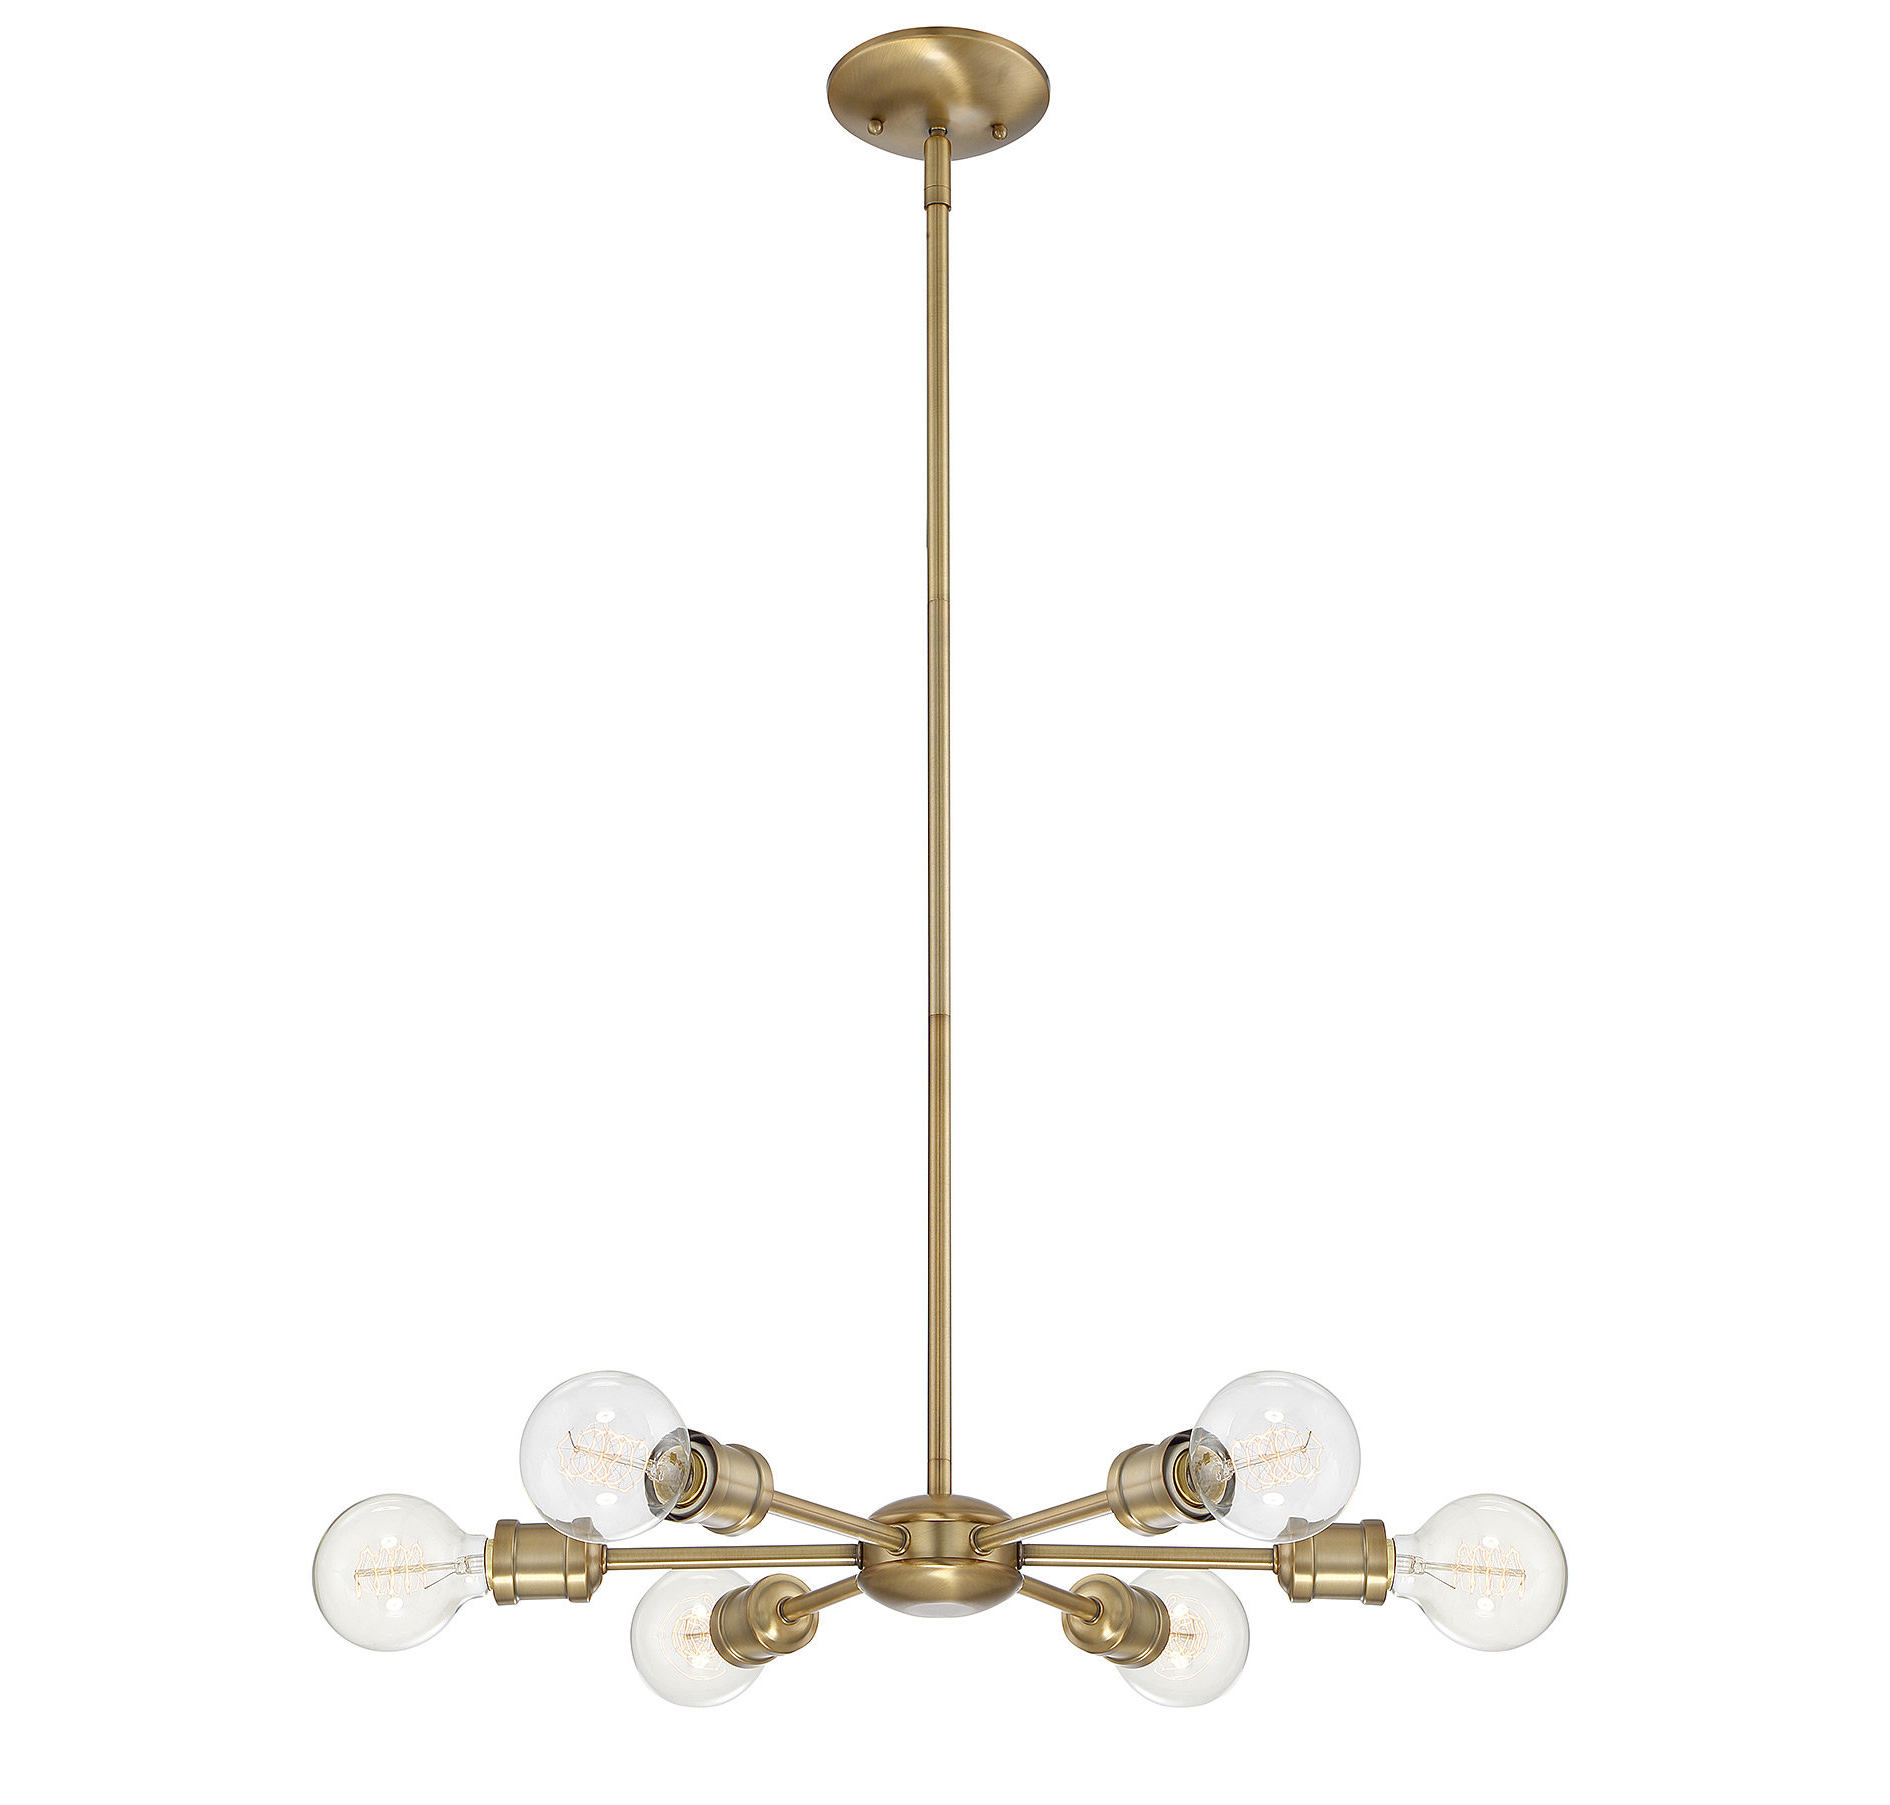 Bautista 5-Light Sputnik Chandeliers in Best and Newest Bautista 6-Light Sputnik Chandelier